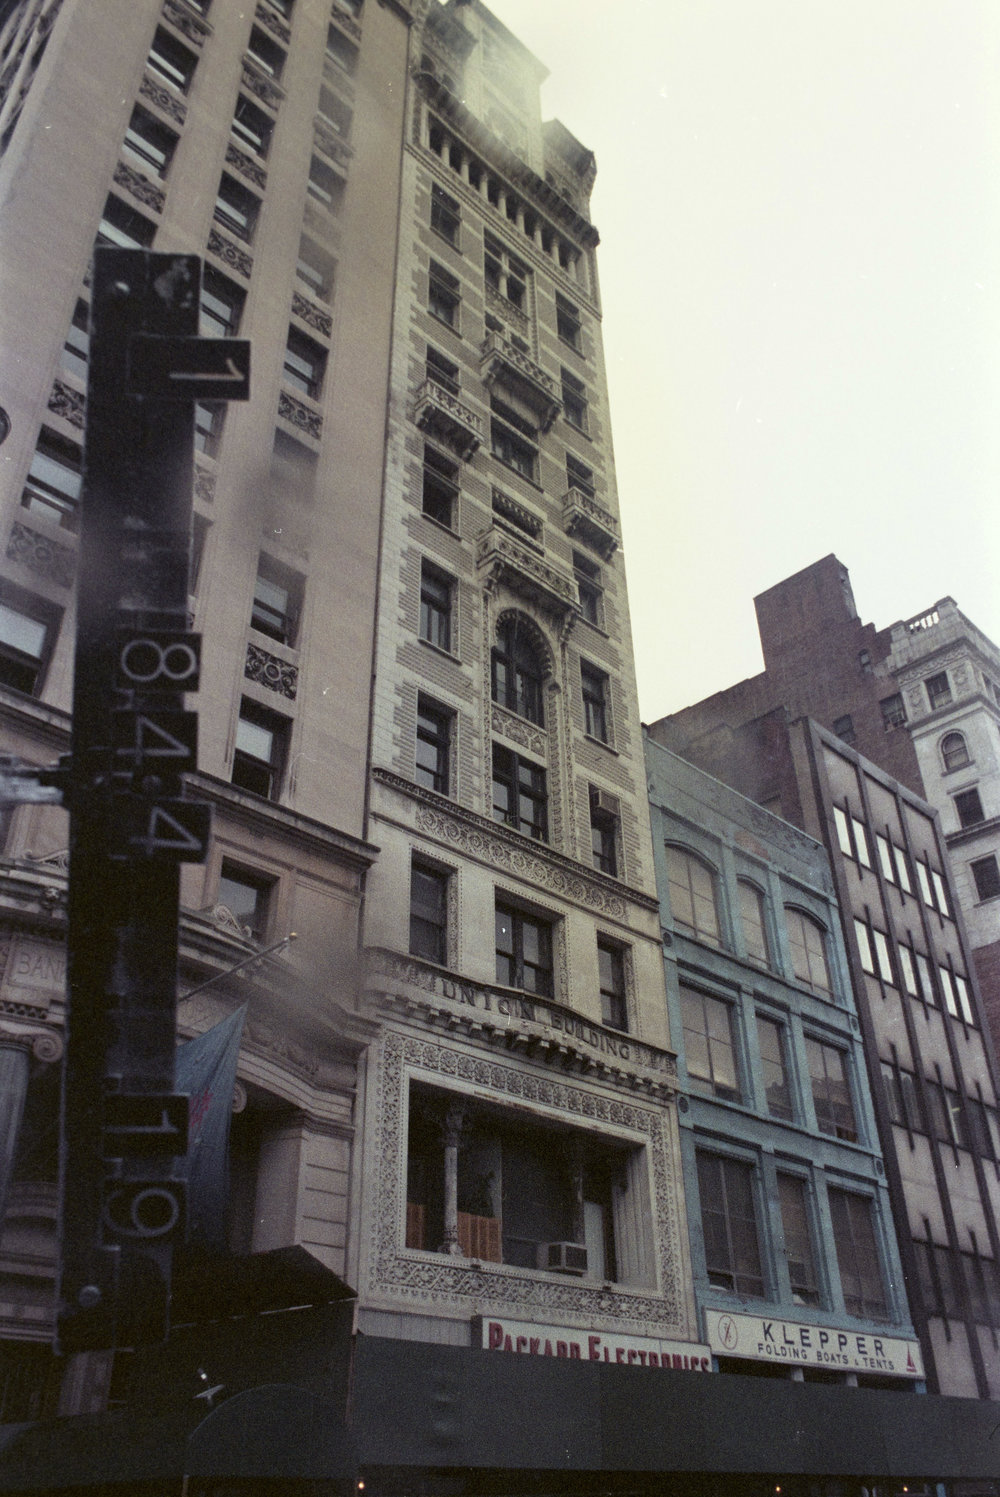 33 Union Square West, ca. 1985. Warhol was shot here in 1968. Department of Finance Collection, NYC Municipal Archives.